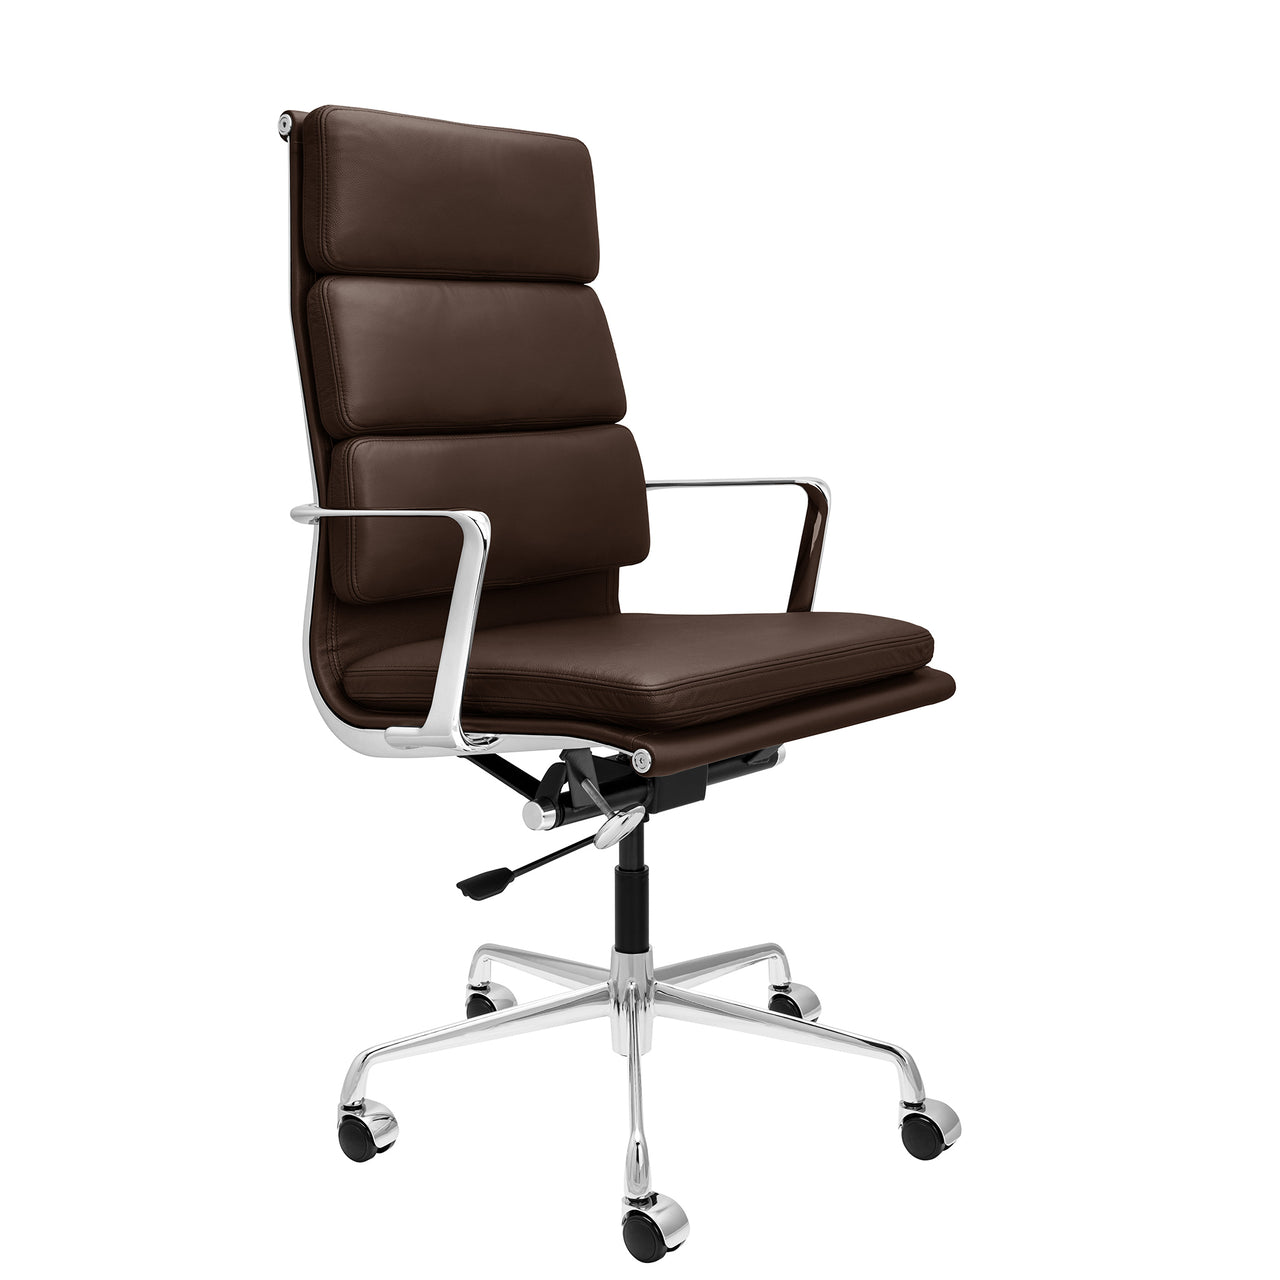 SHIPS MARCH 19TH - SOHO Pro Tall Back Soft Pad Management Chair (Dark Brown Italian Leather)